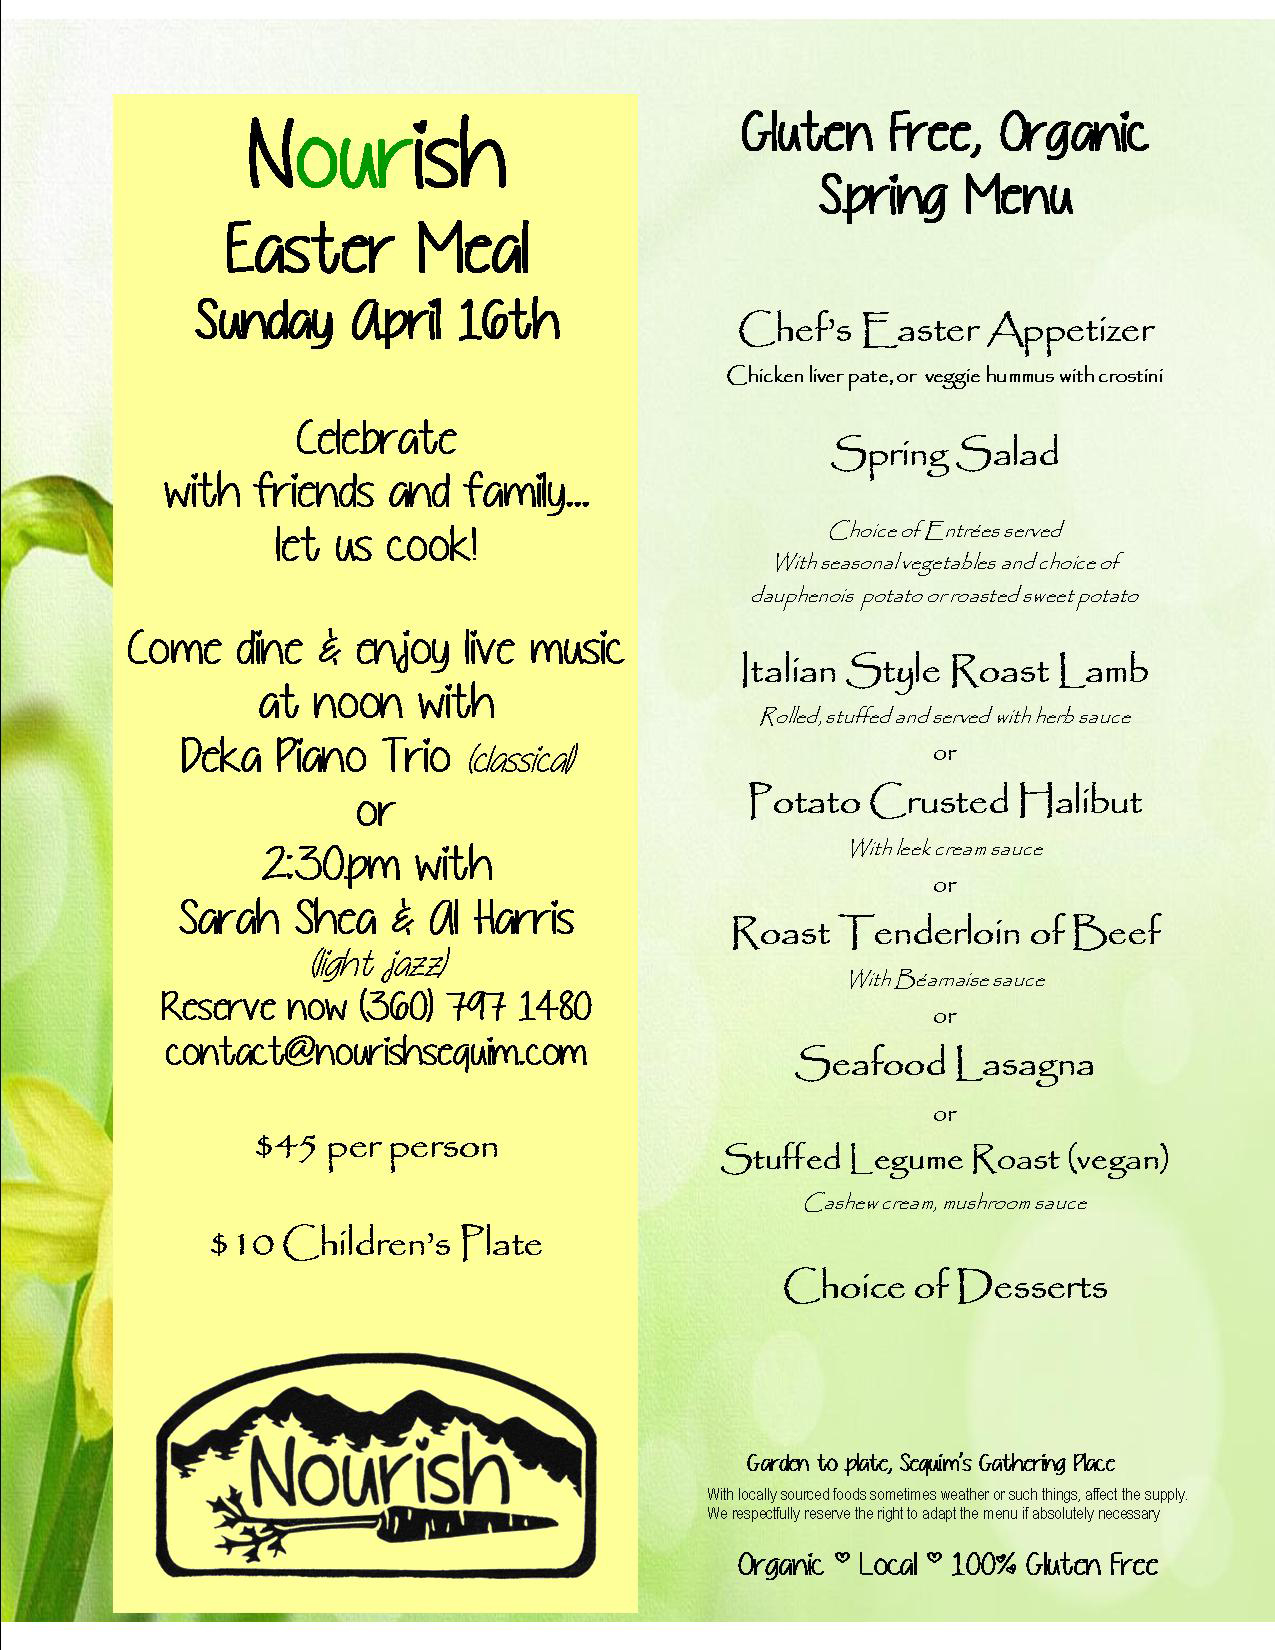 Join us for Easter, leave the cooking to us! - Nourish